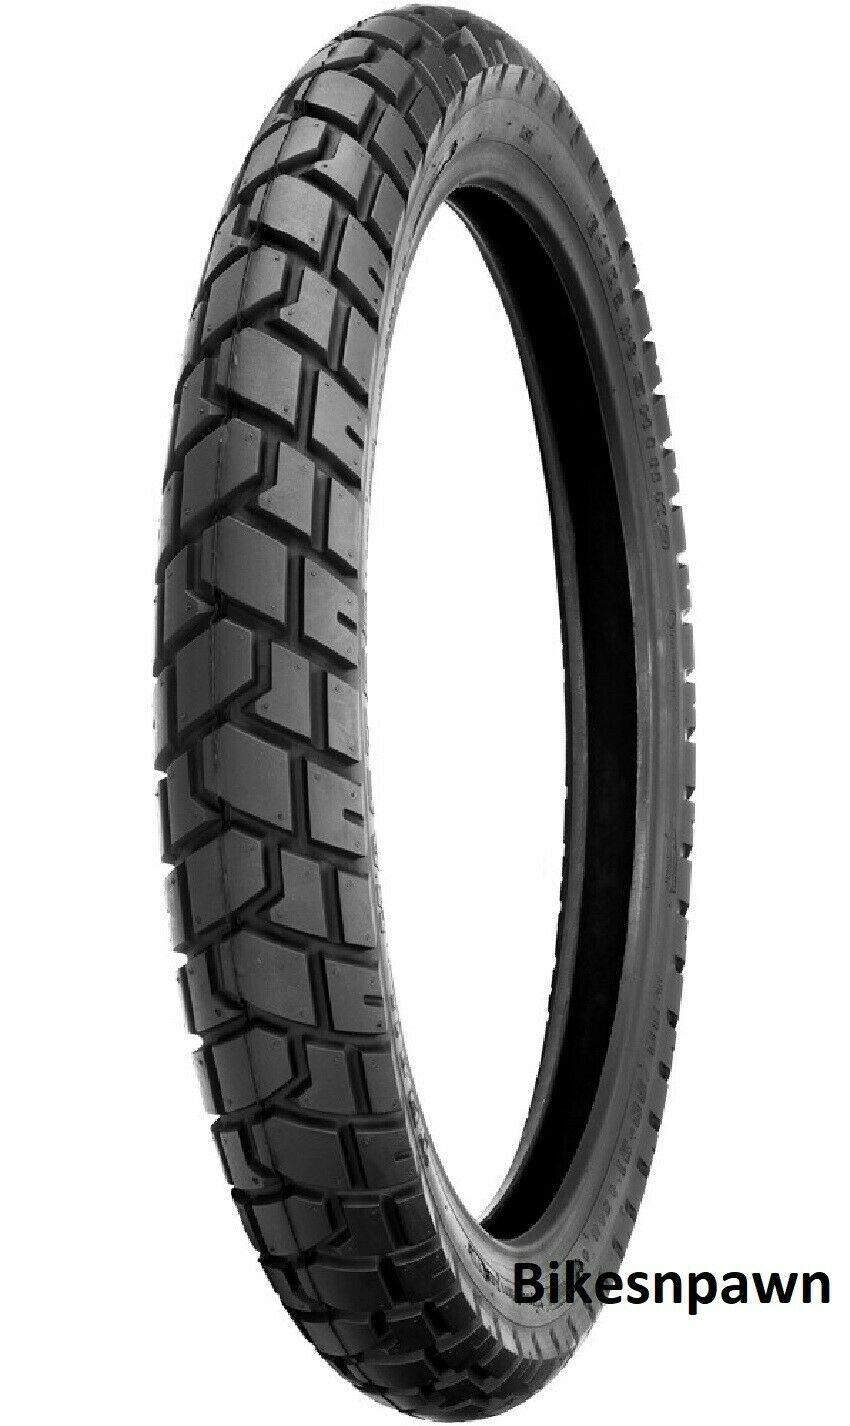 New 110/80-19 TL Shinko 705 Series Dual Sport Front Motorcycle Tire 59Q